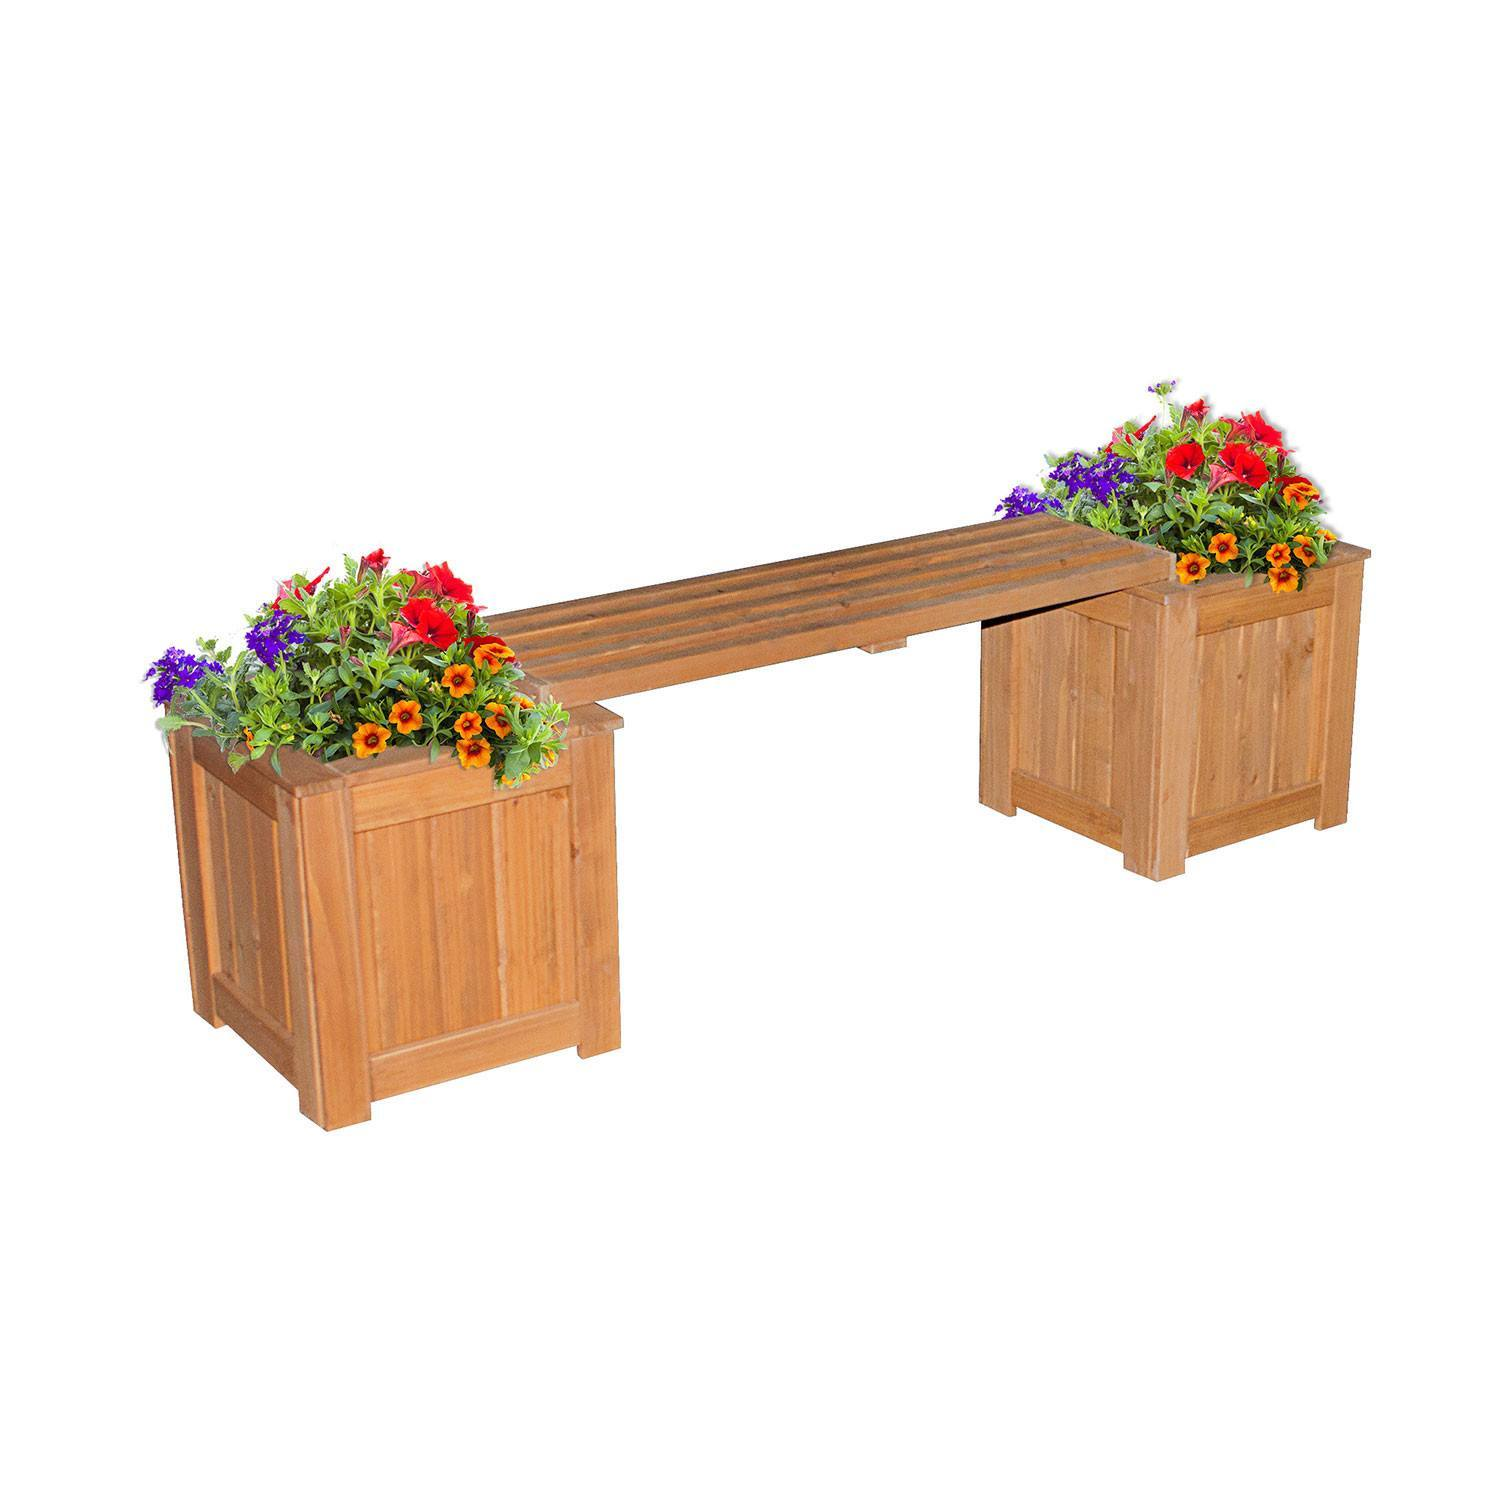 Patio bench with planters patio backyard discovery Patio products